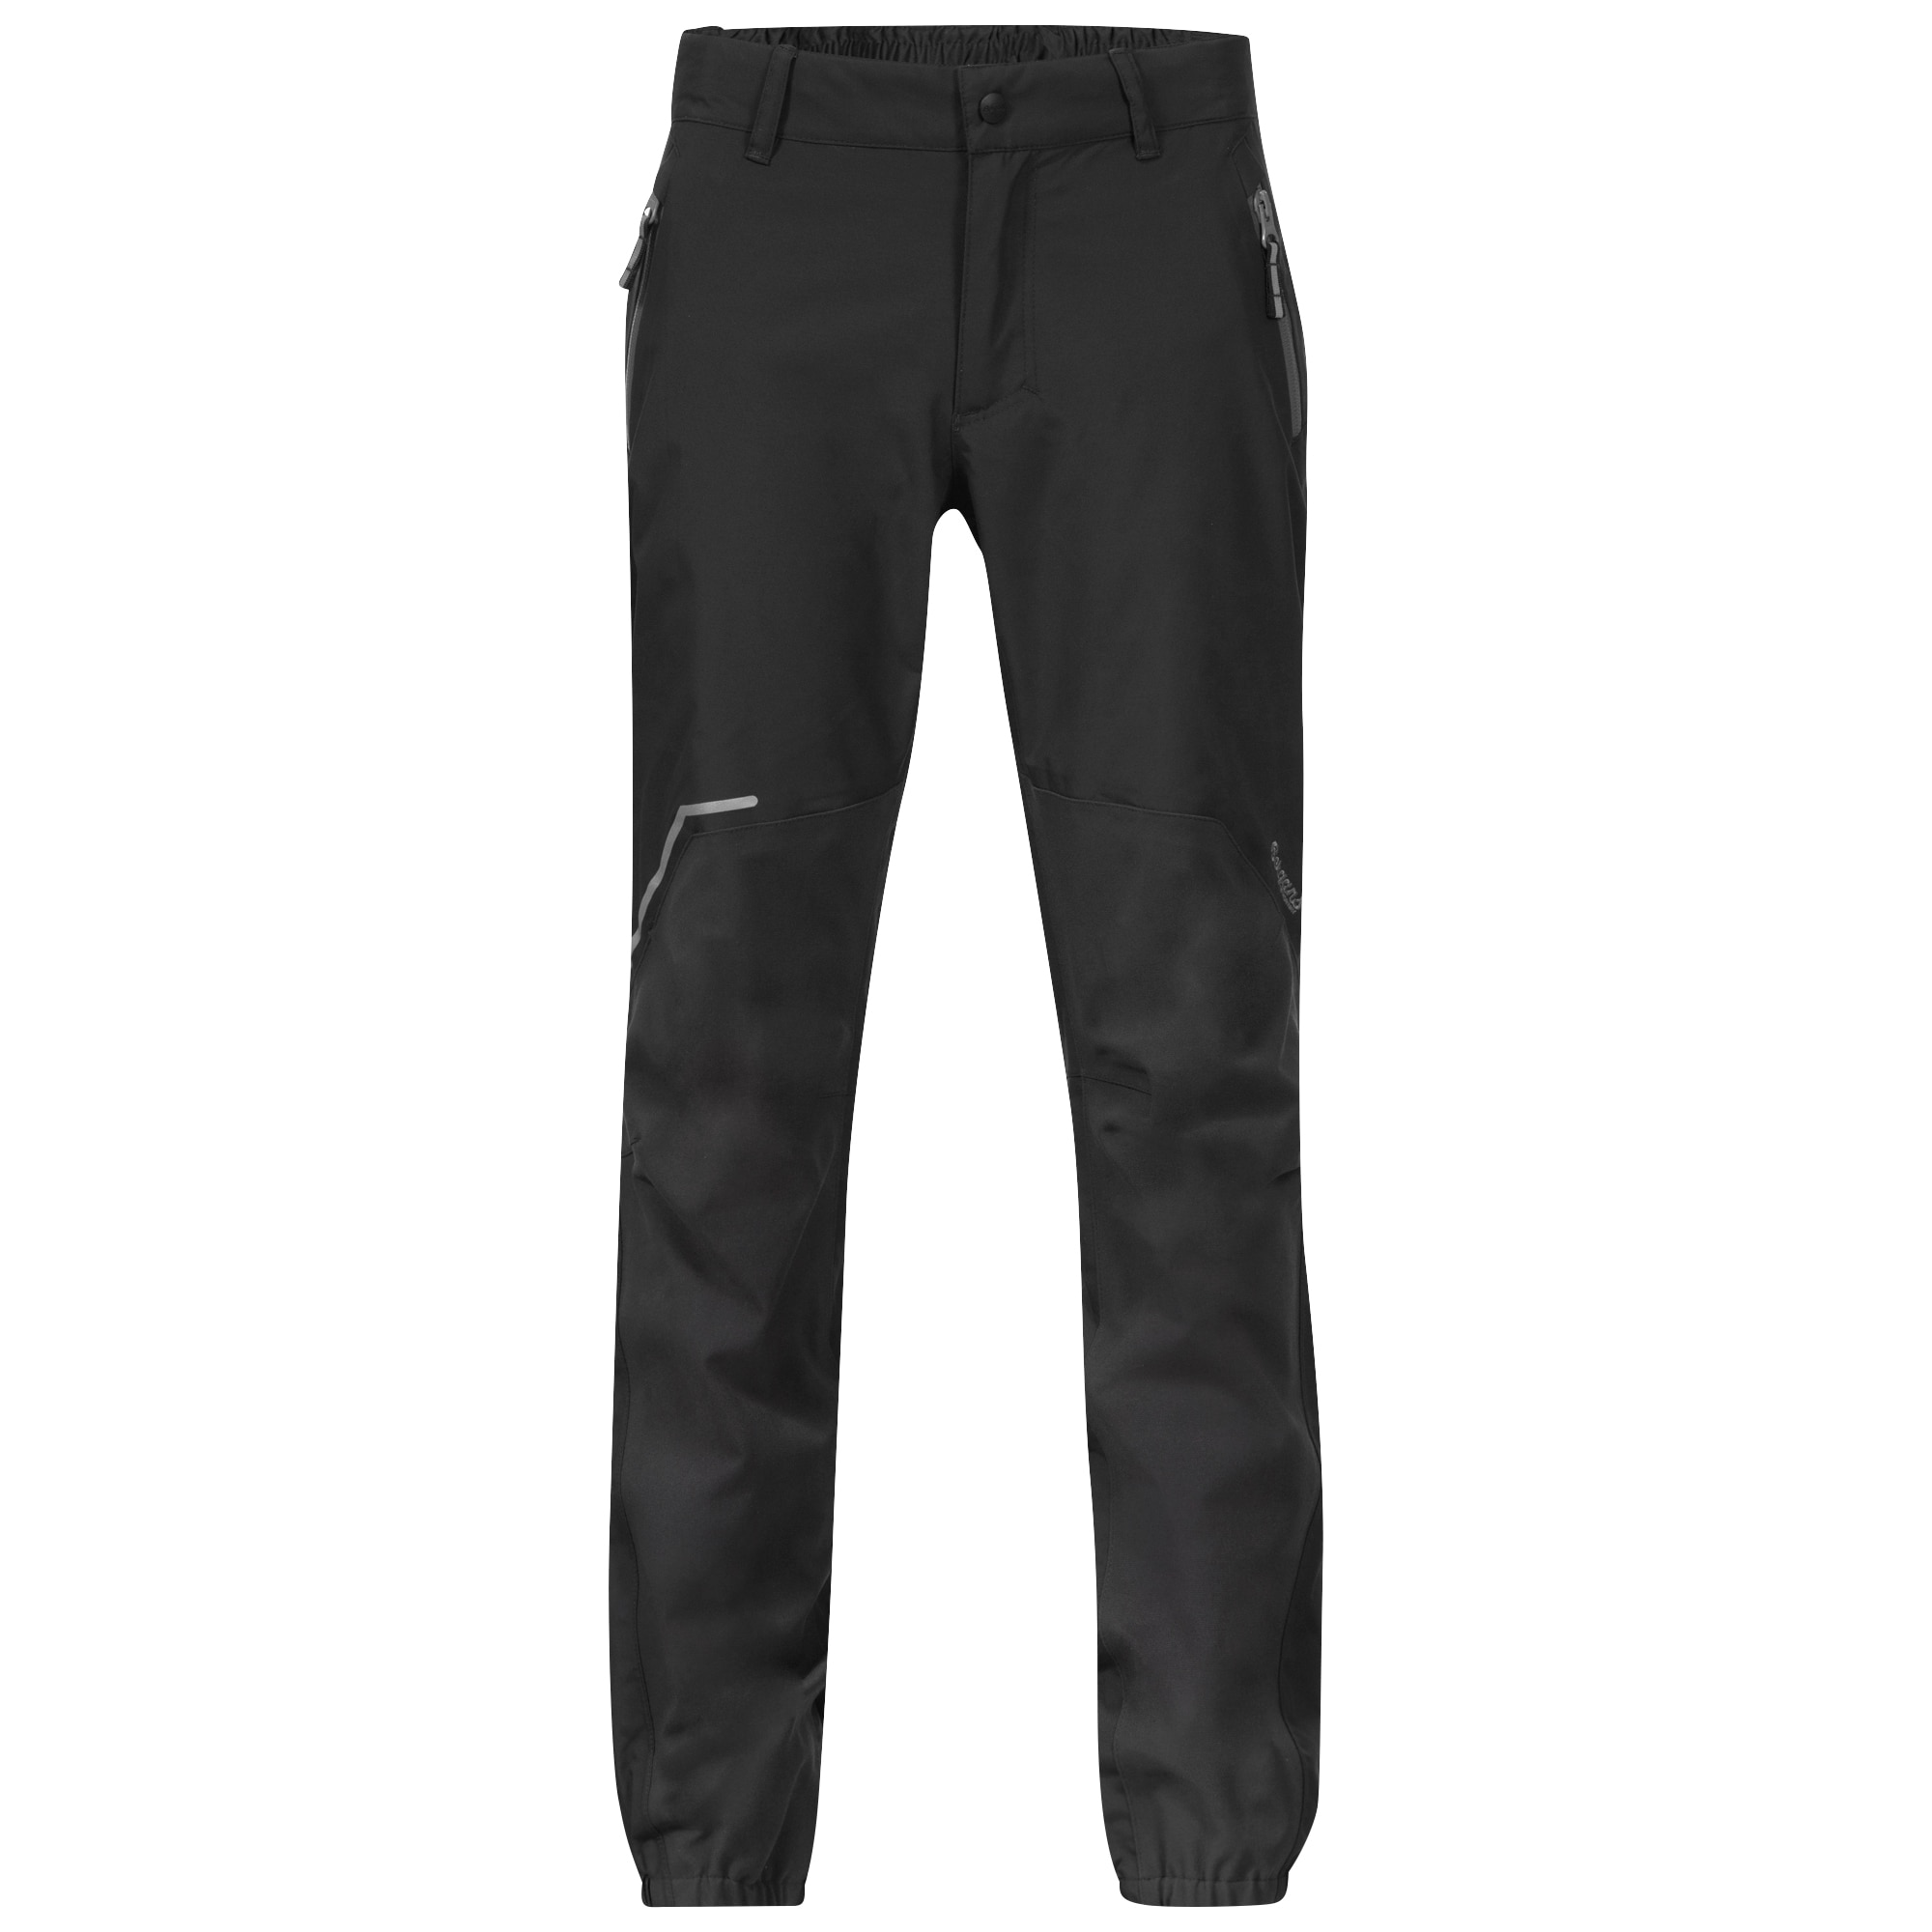 Sjoa 2L Youth Pants